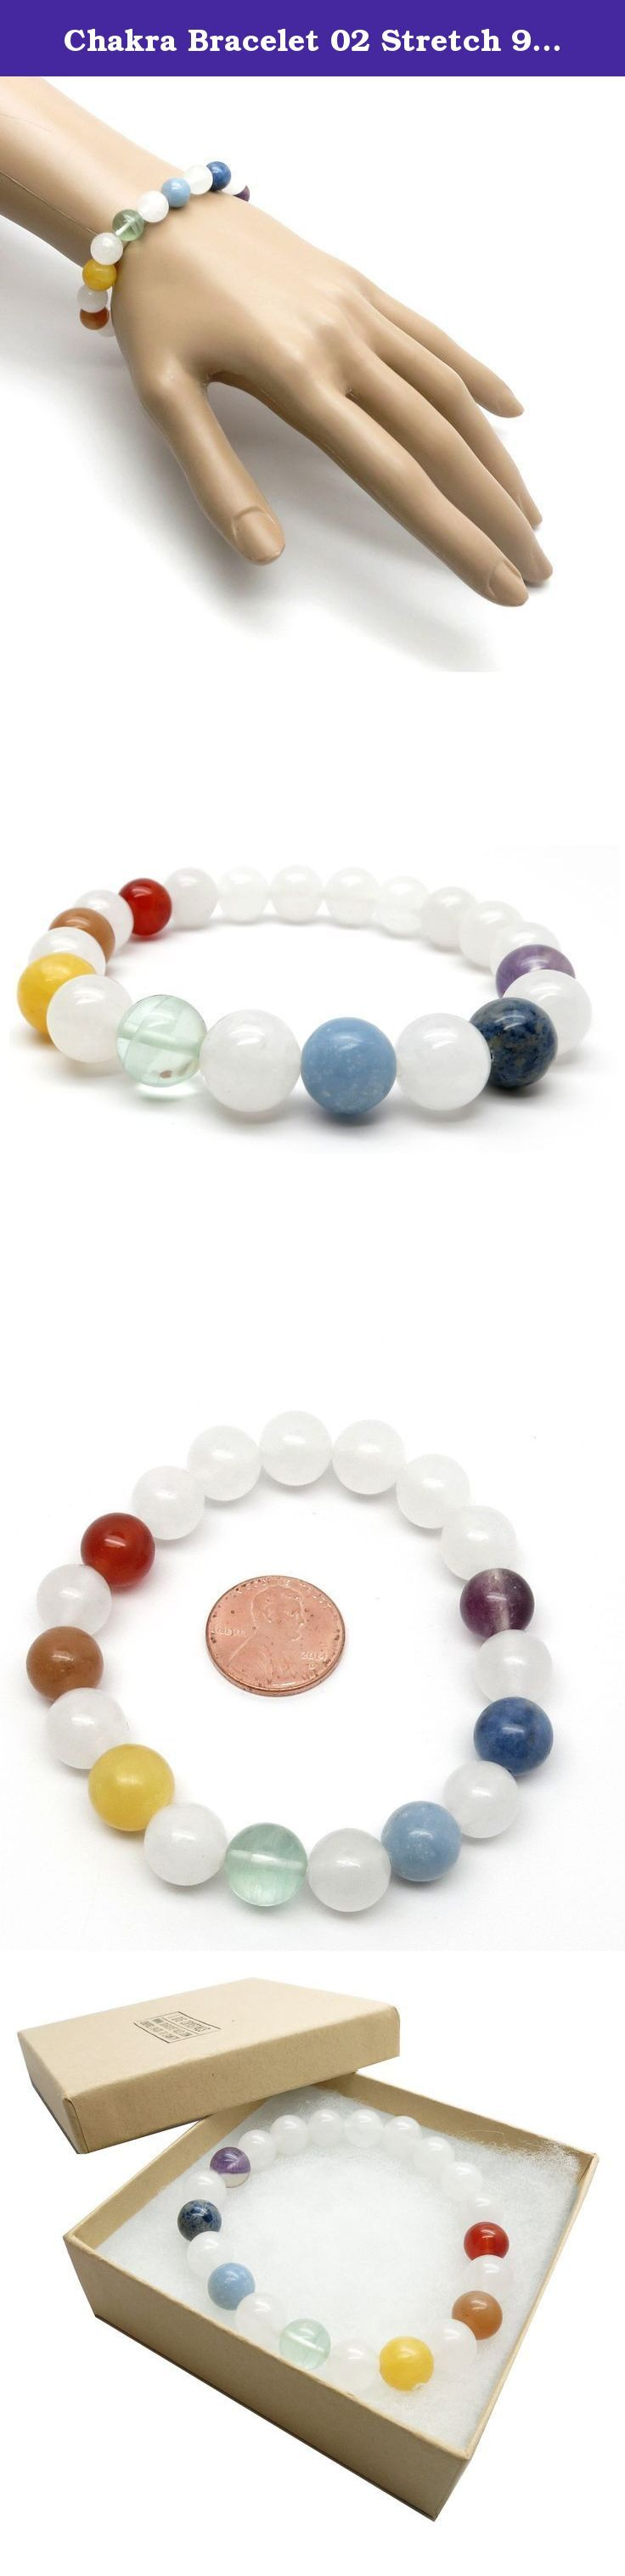 Chakra Bracelet 02 Stretch 9-10mm Round Quartz Angelite Stone Crystal (Gift Box) (7.5 Inches). Chakra Stretch Bracelet Natural Snow Quartz and Chakra healing crystals are strung on your new stretch bracelet. The natural stones are polished into 9mm to 10mm round beads. The Snow Quartz is a translucent white crystal strung on sturdy bracelet stretch cord with the following chakra stones: Crown Chakra: Translucent Purple Fluorite Third Eye Chakra: Blue & White Sodalite Throat Chakra…